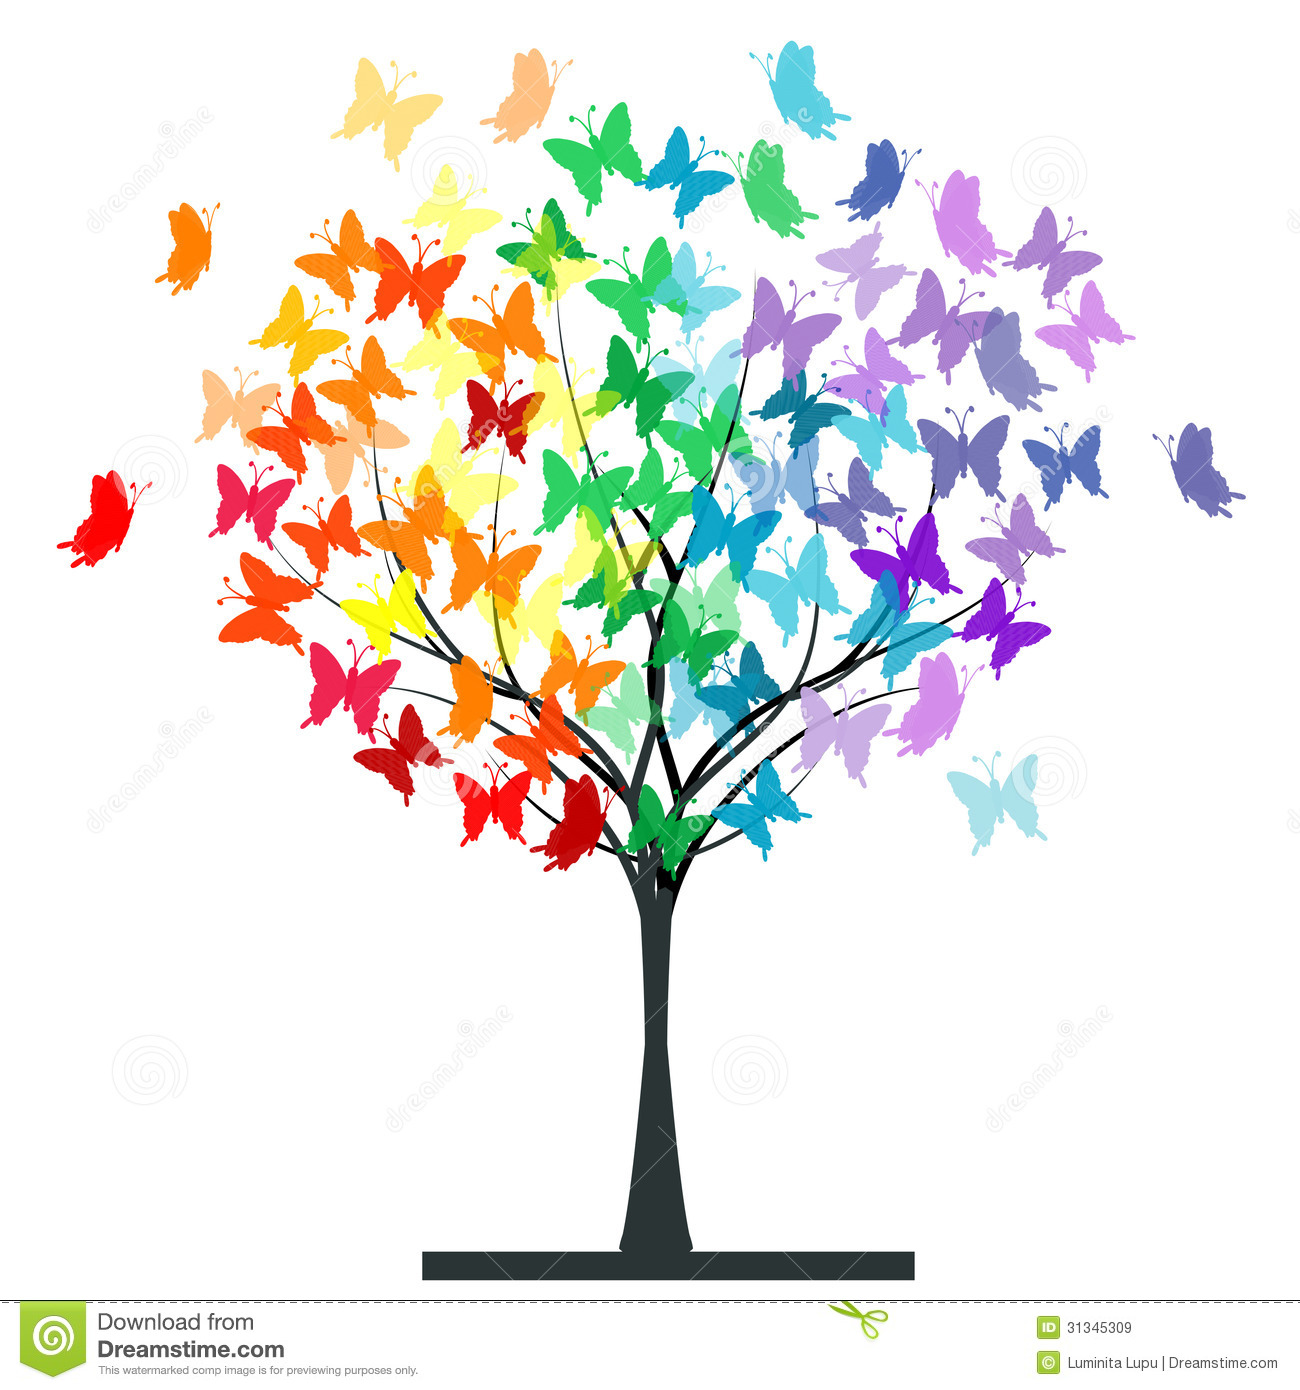 Butterflies Rainbow Tree Illustration 31345309 - Megapixl